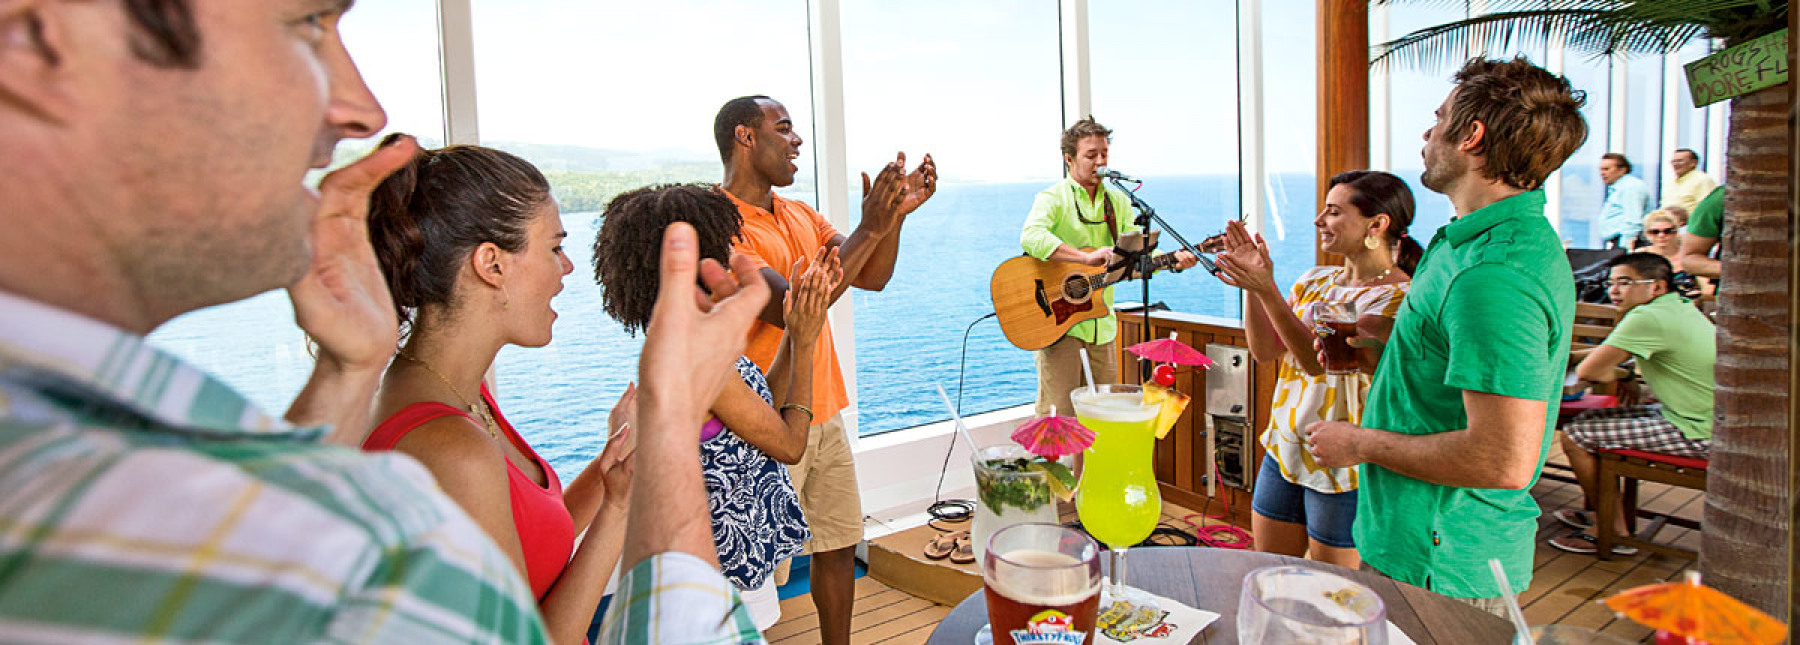 Carnival Cruise Lines Carnival Conquest Internet Live Music.jpg